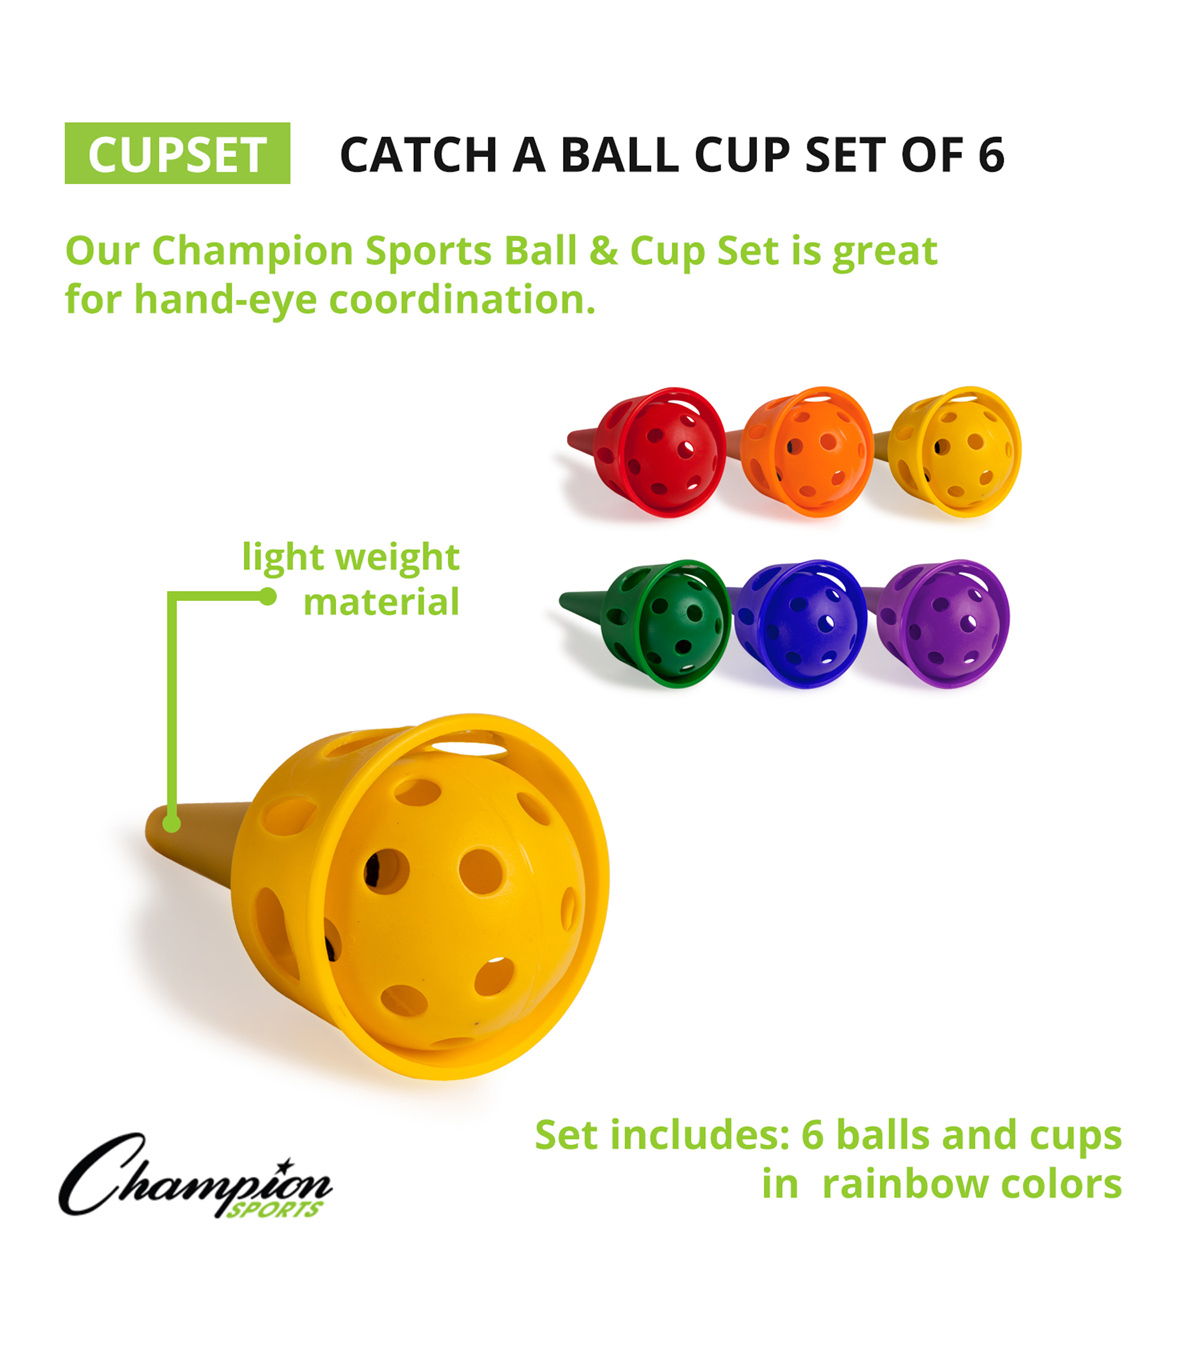 Champion Catch-A-Ball Cup Set of 6